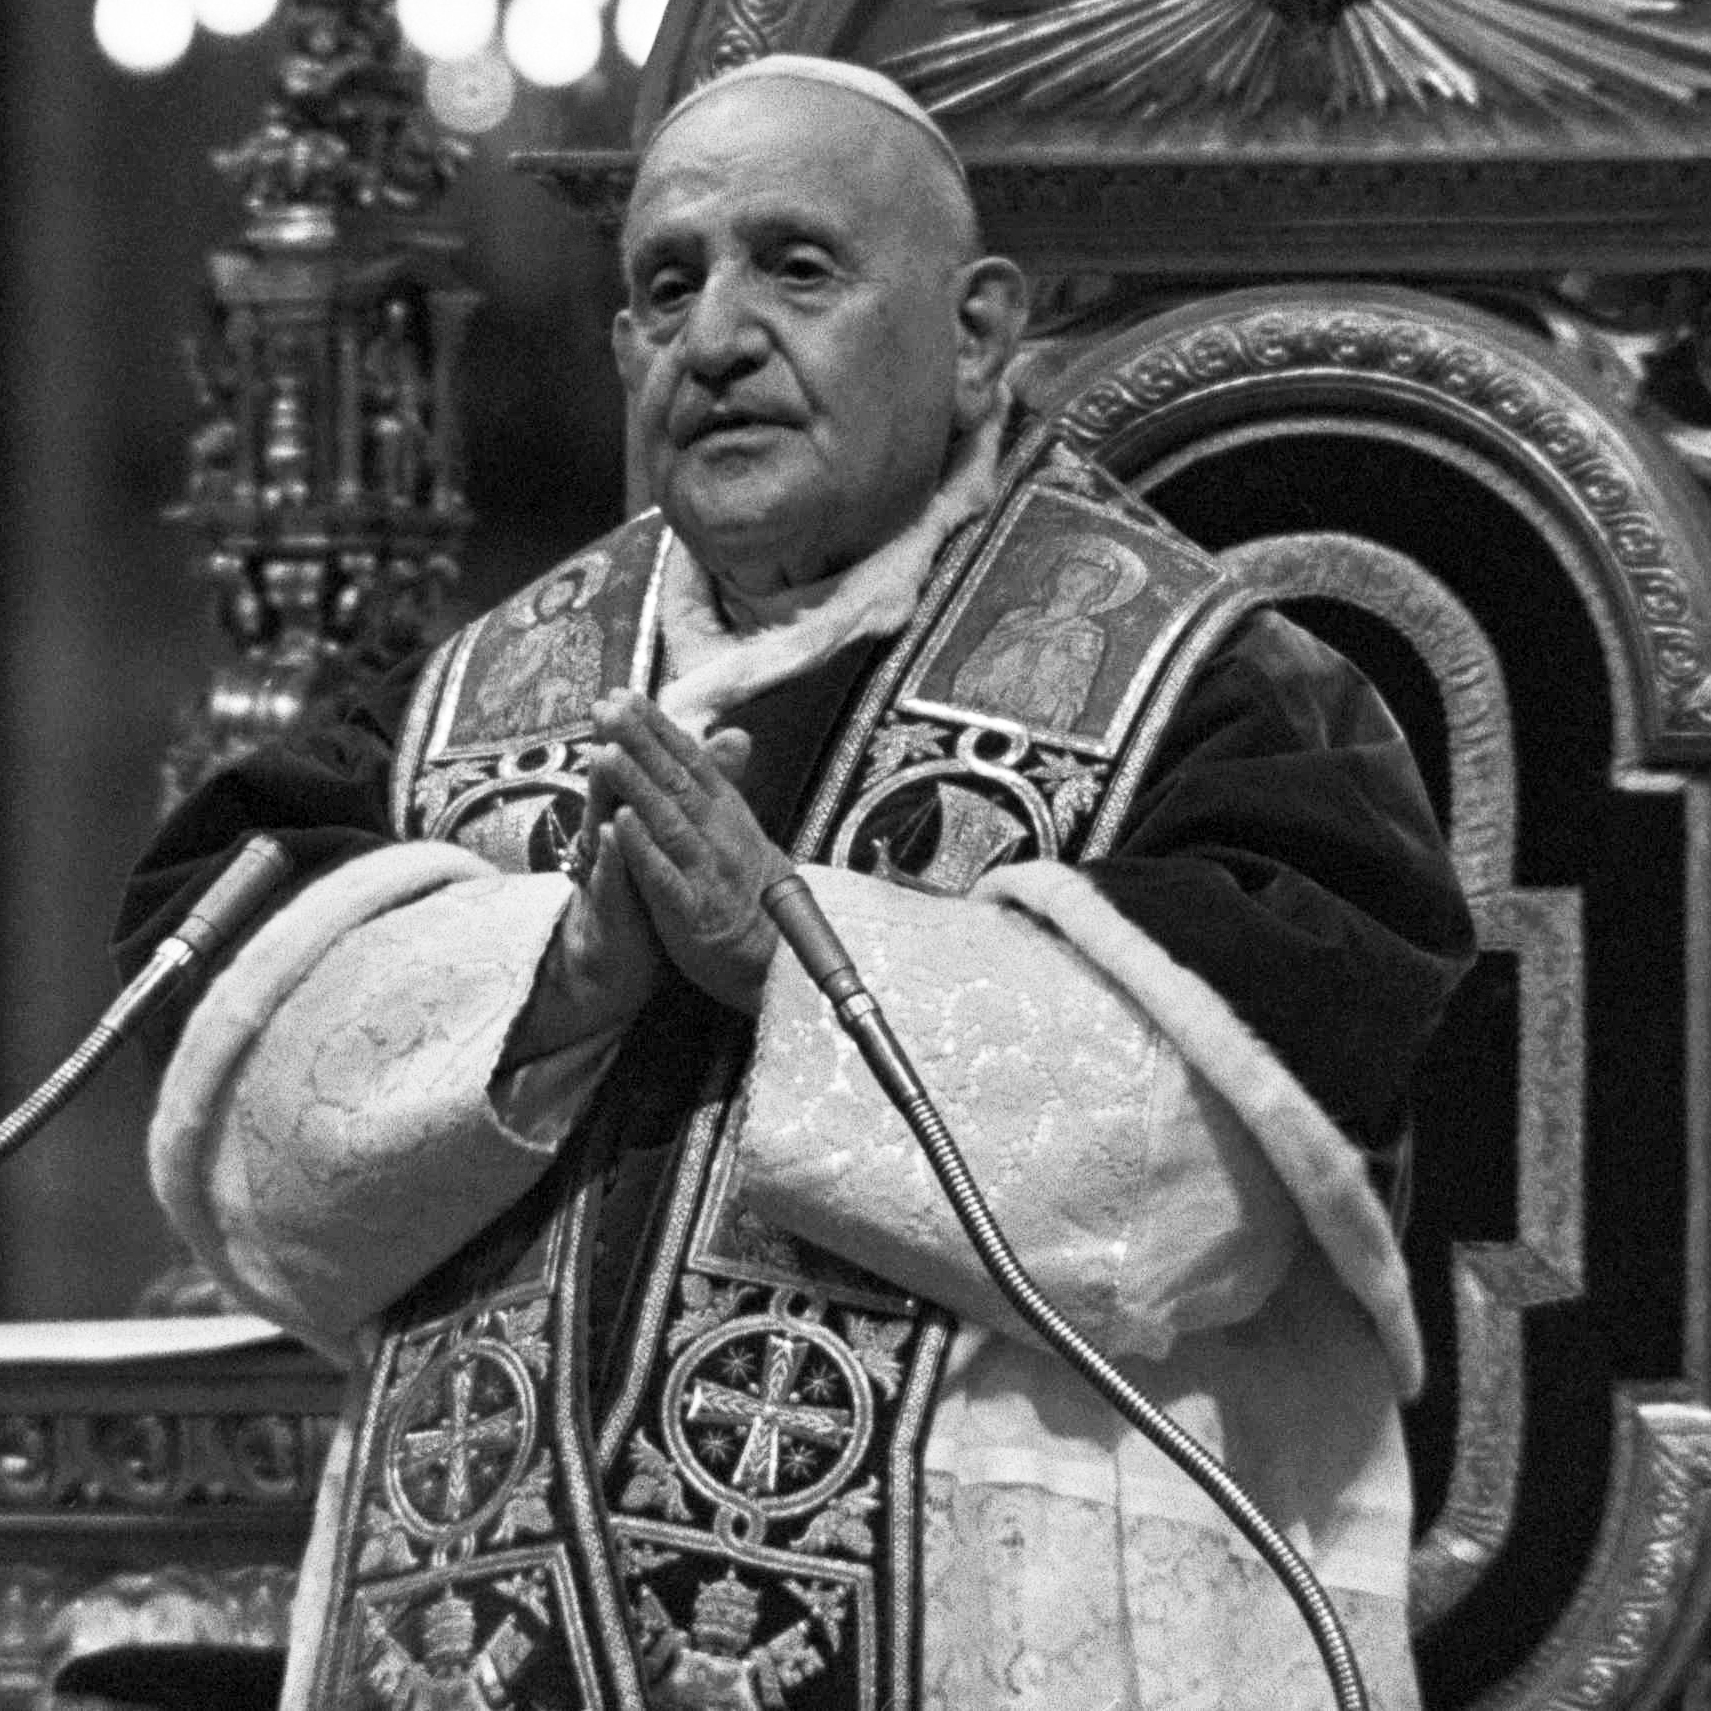 Pope John XXIII, standing in front of his throne on Dec. 8, 1962, at a ceremony for the Second Vactican Council, which addressed the church's relations with the modern world.